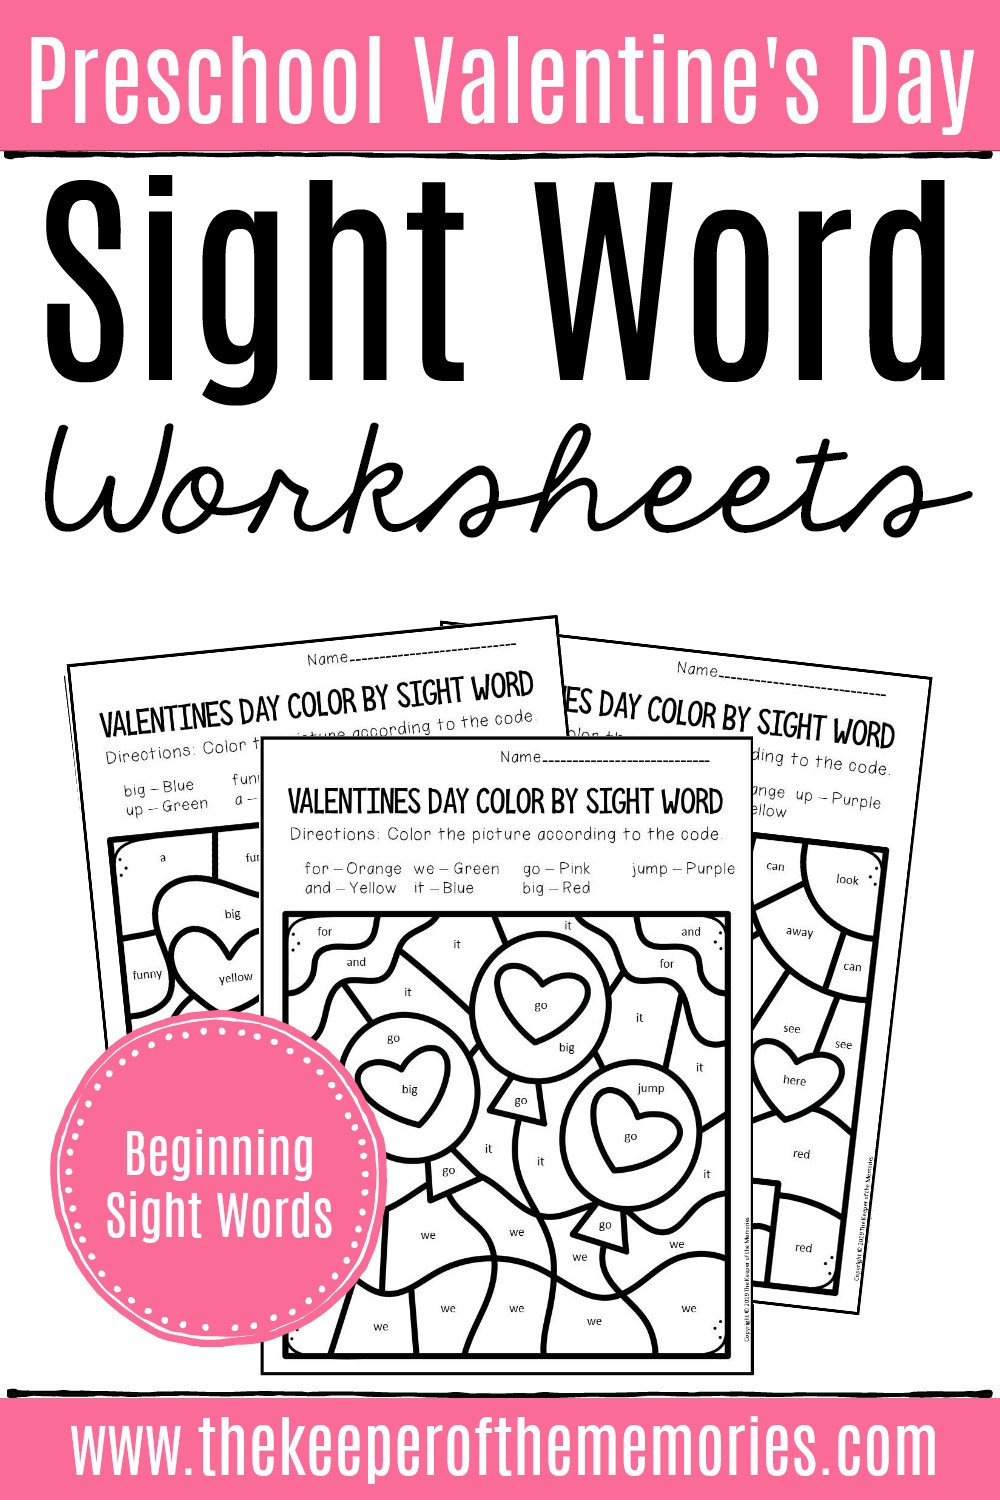 Free Color Word Worksheets Color by Sight Word Valentines Day Preschool Worksheets